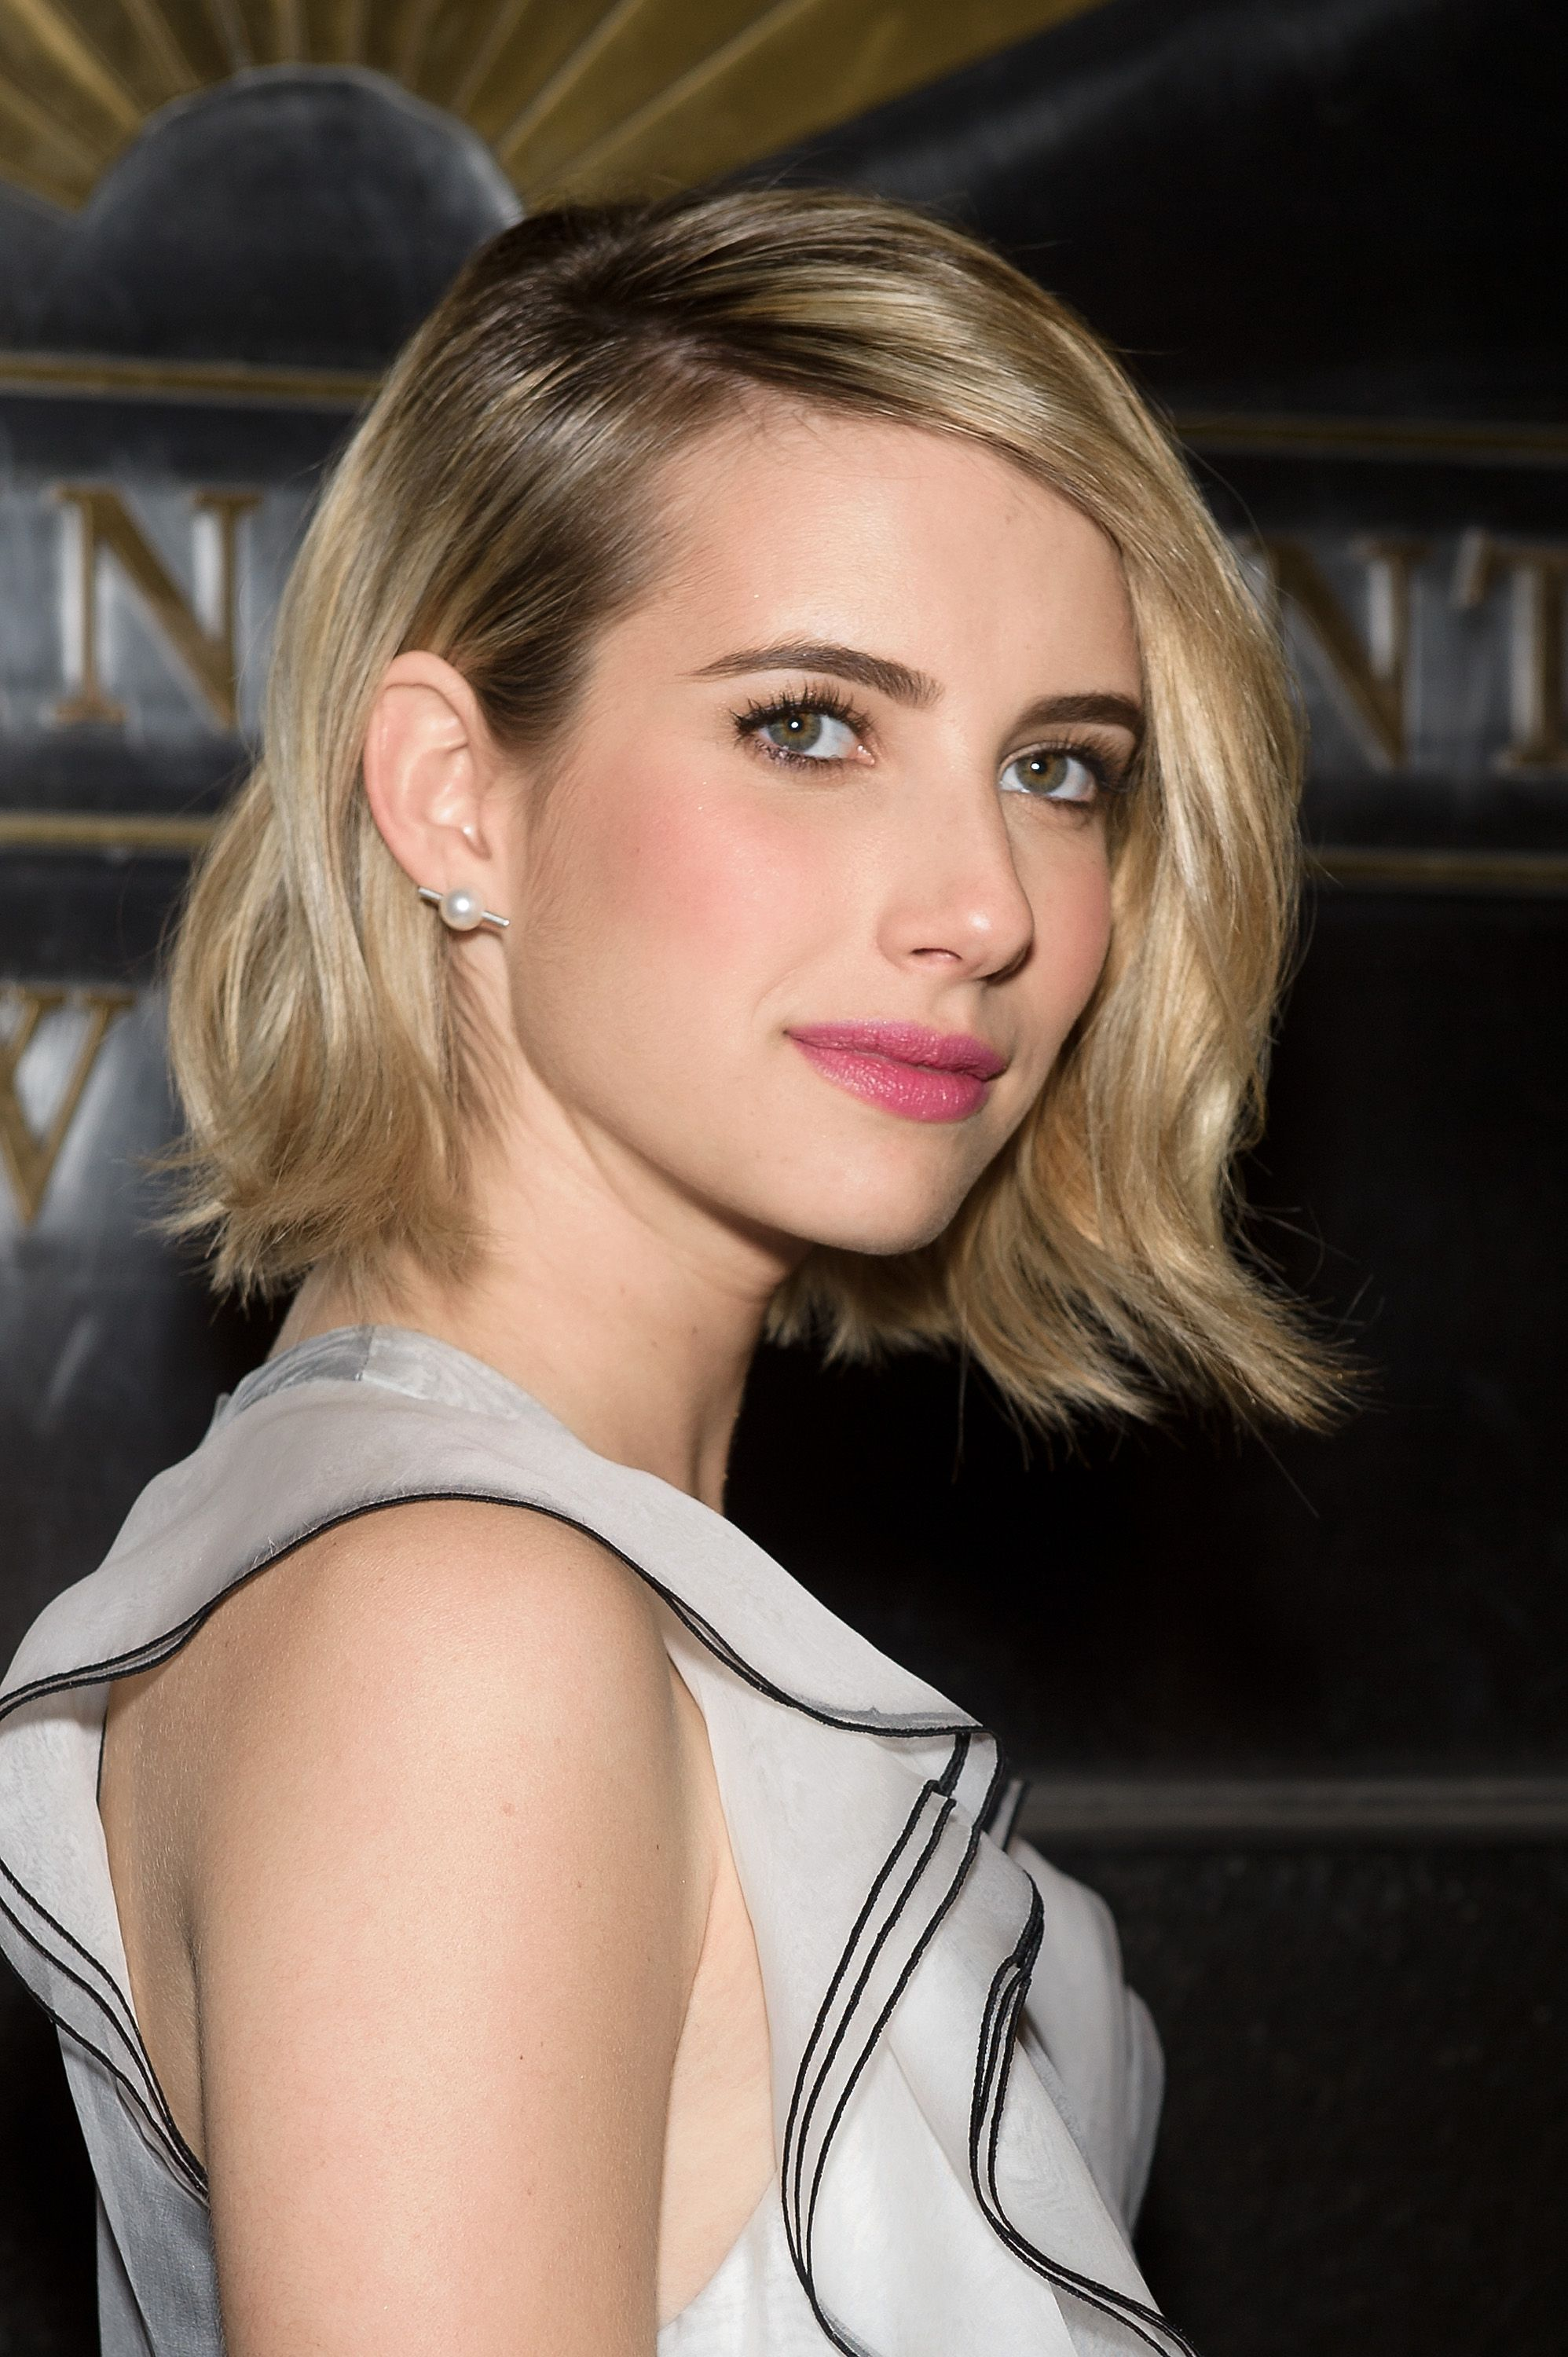 11 Cant-Miss Celeb Beauty Looks From The Week